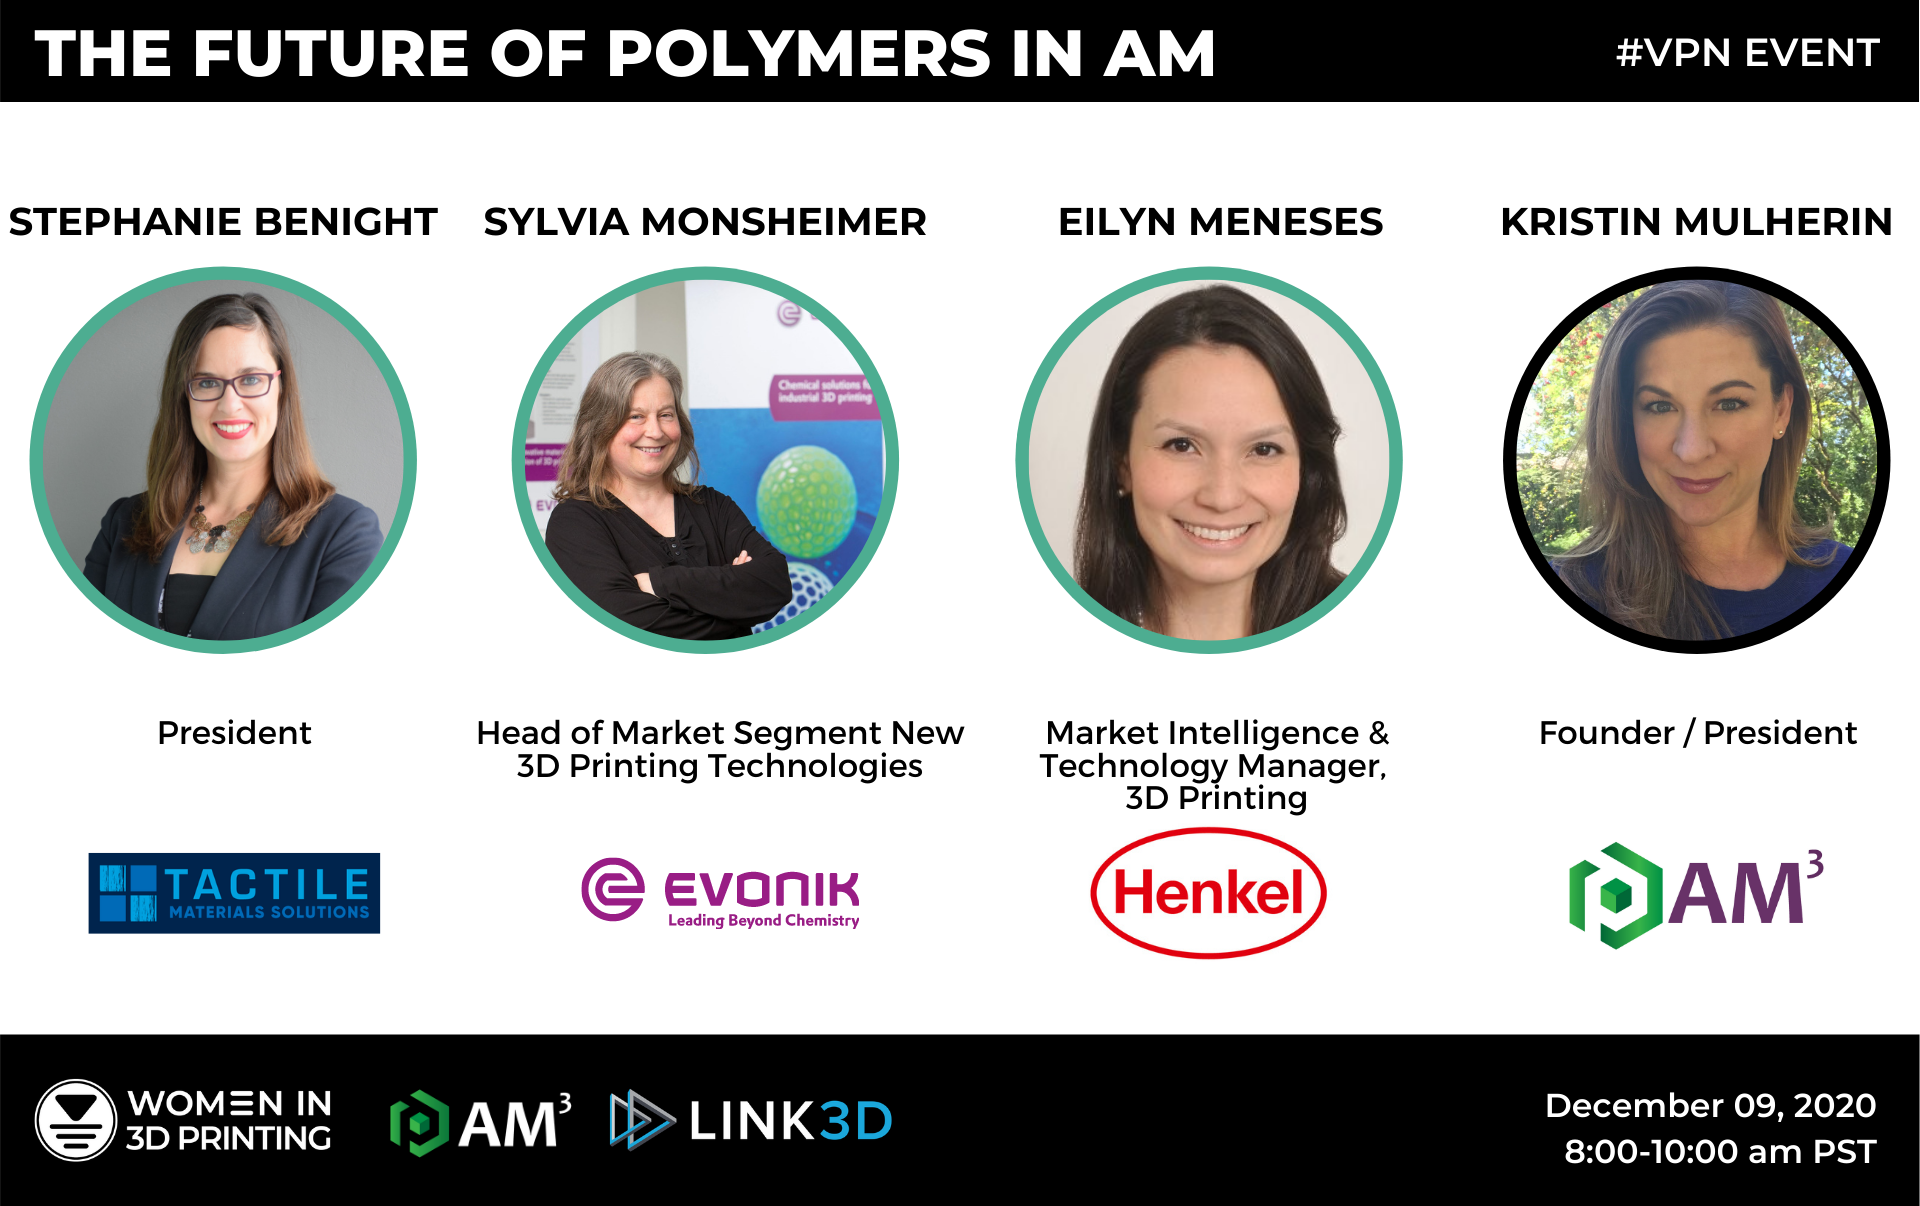 Future of Polymers AM Event Poster